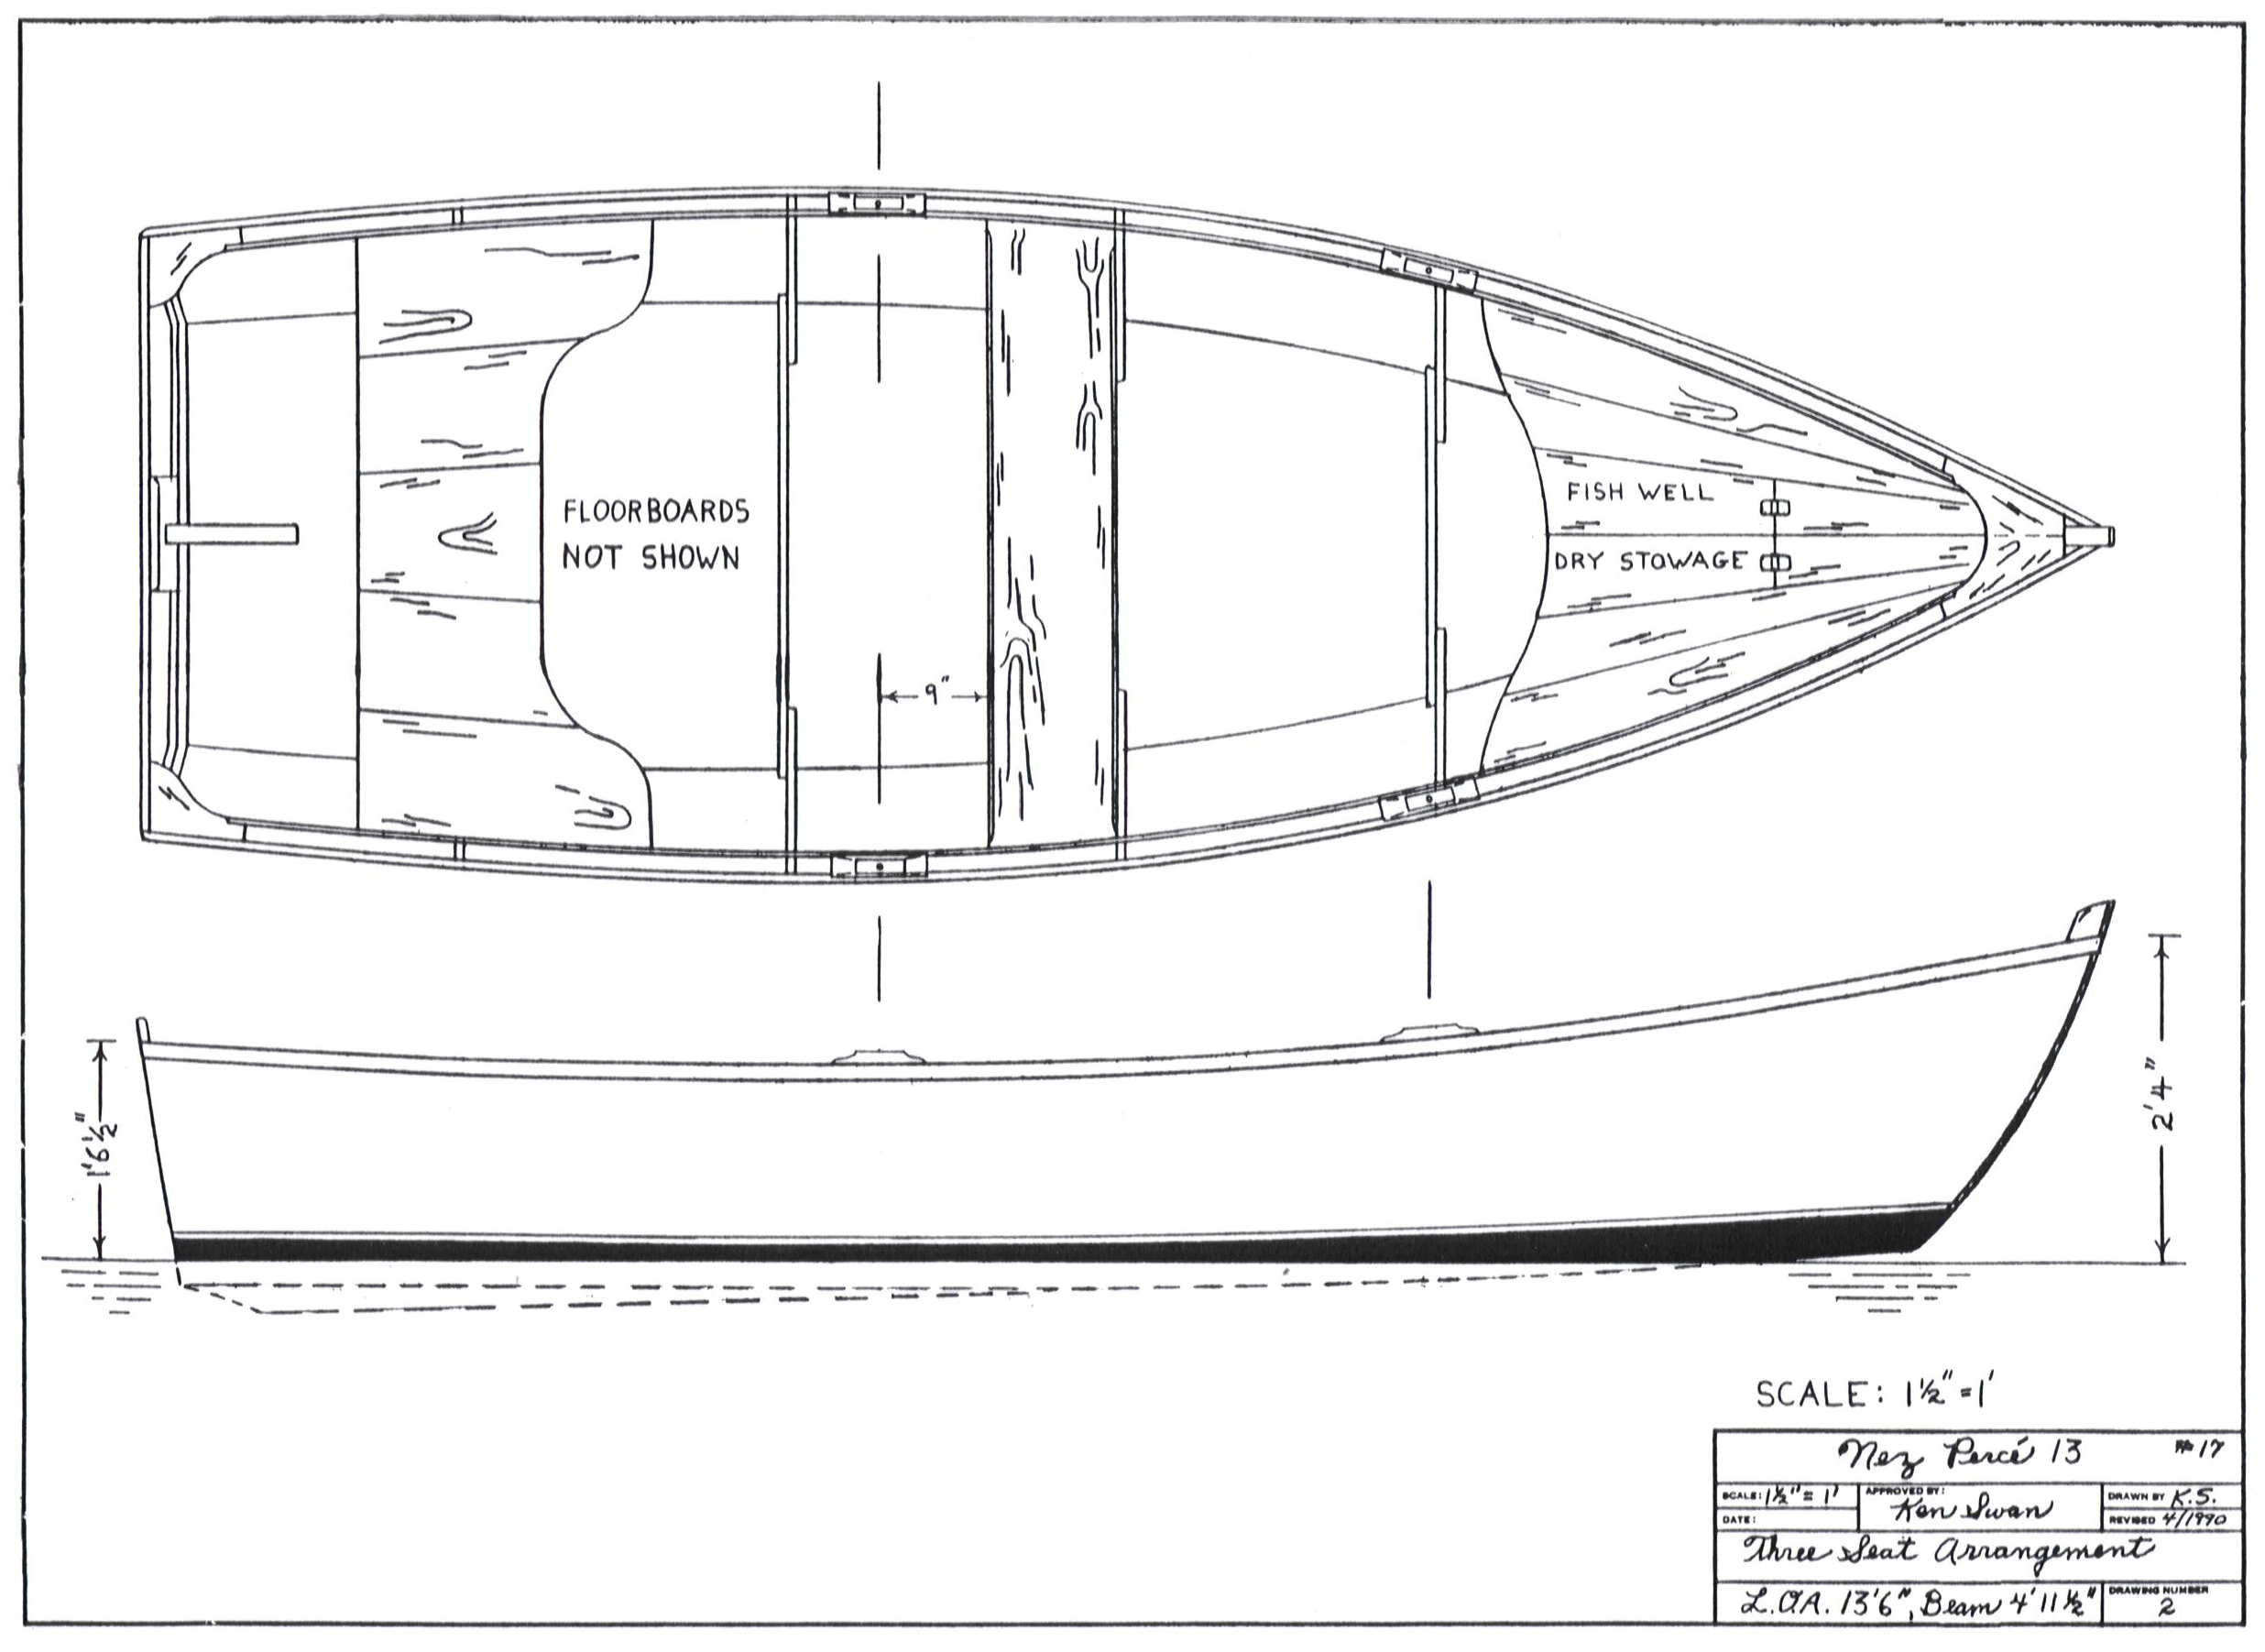 Art Line Yacht Design : Boat designs motor yachting